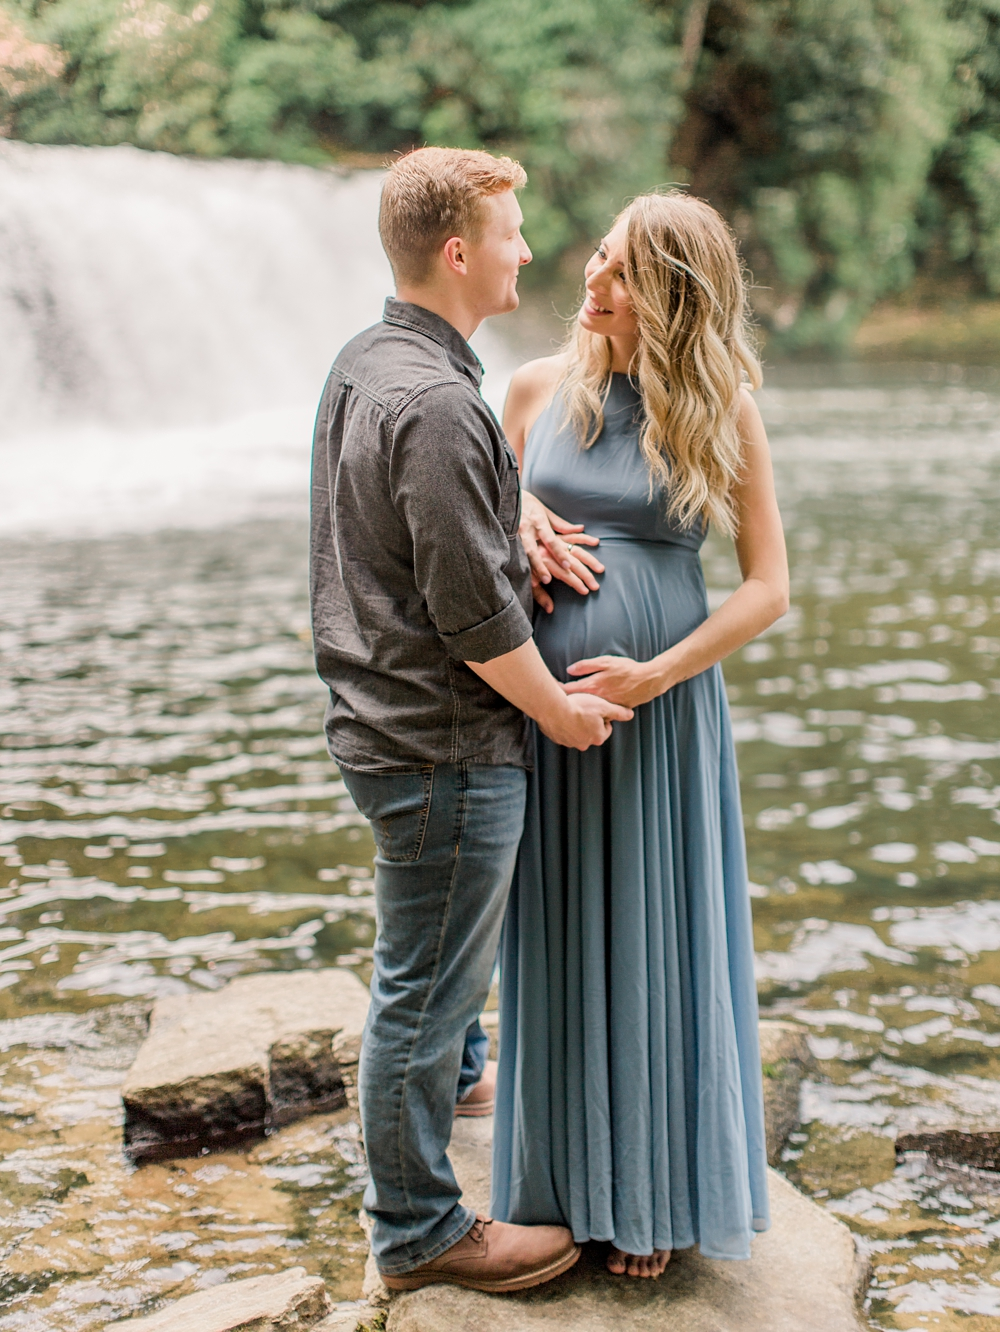 Maternity Photos | DuPont State Forest | Timeless | Fine Art Photographer | Ashley Holstein Photography